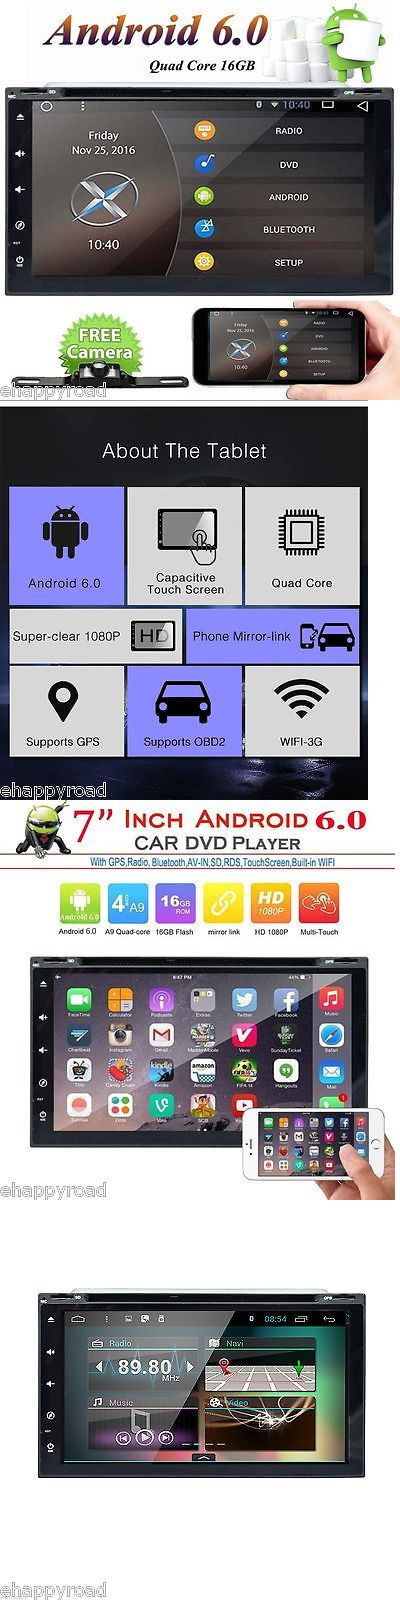 Video In-Dash Units w GPS: 2017 Android 6.0 Hd Wifi 2 Din Car Head Unit Stereo Radio Dvd Player Gps Navi 3G -> BUY IT NOW ONLY: $228.98 on eBay!